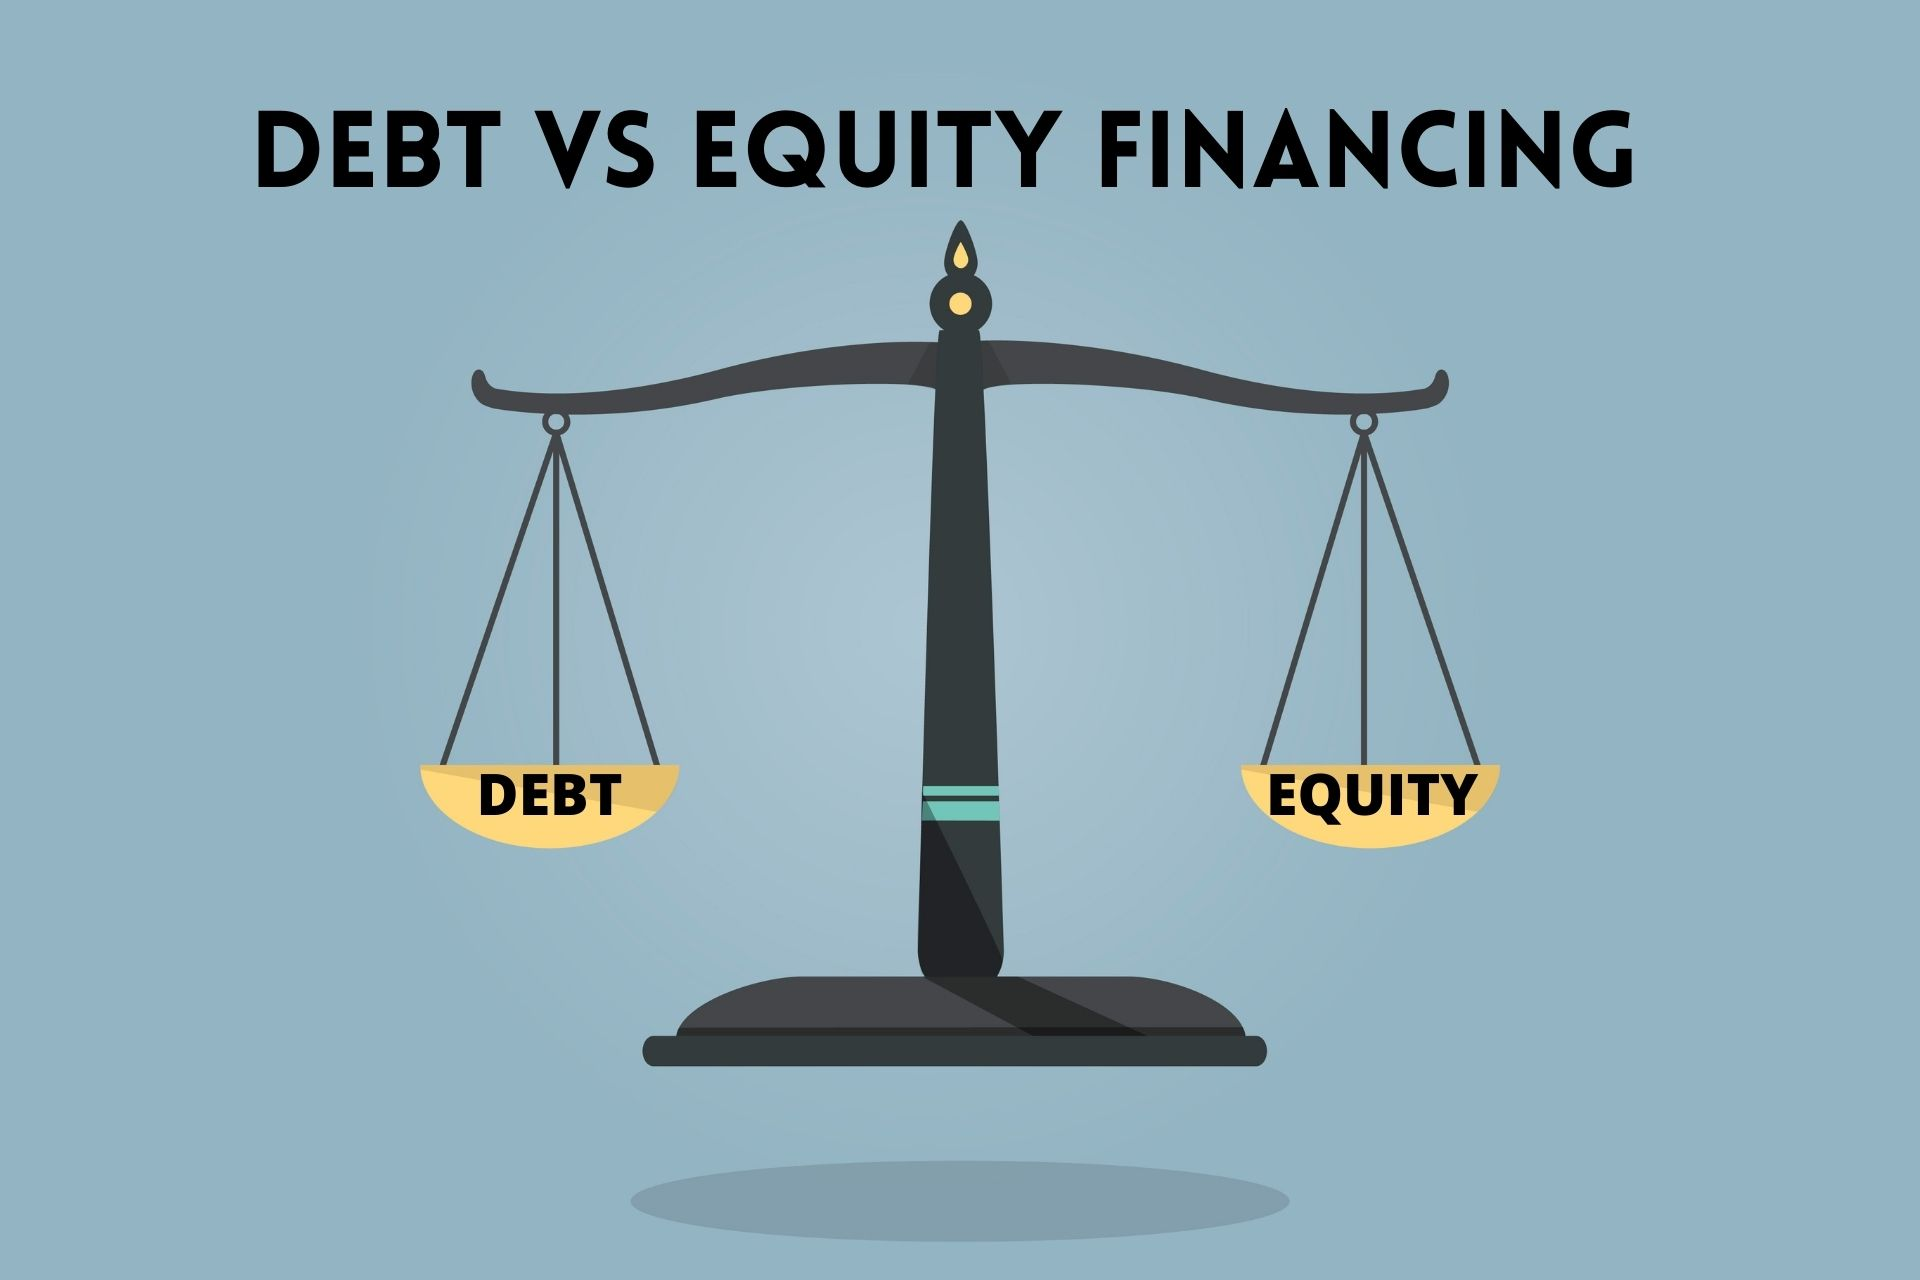 Debt Financing vs Equity Financing - Which One is Best? cover